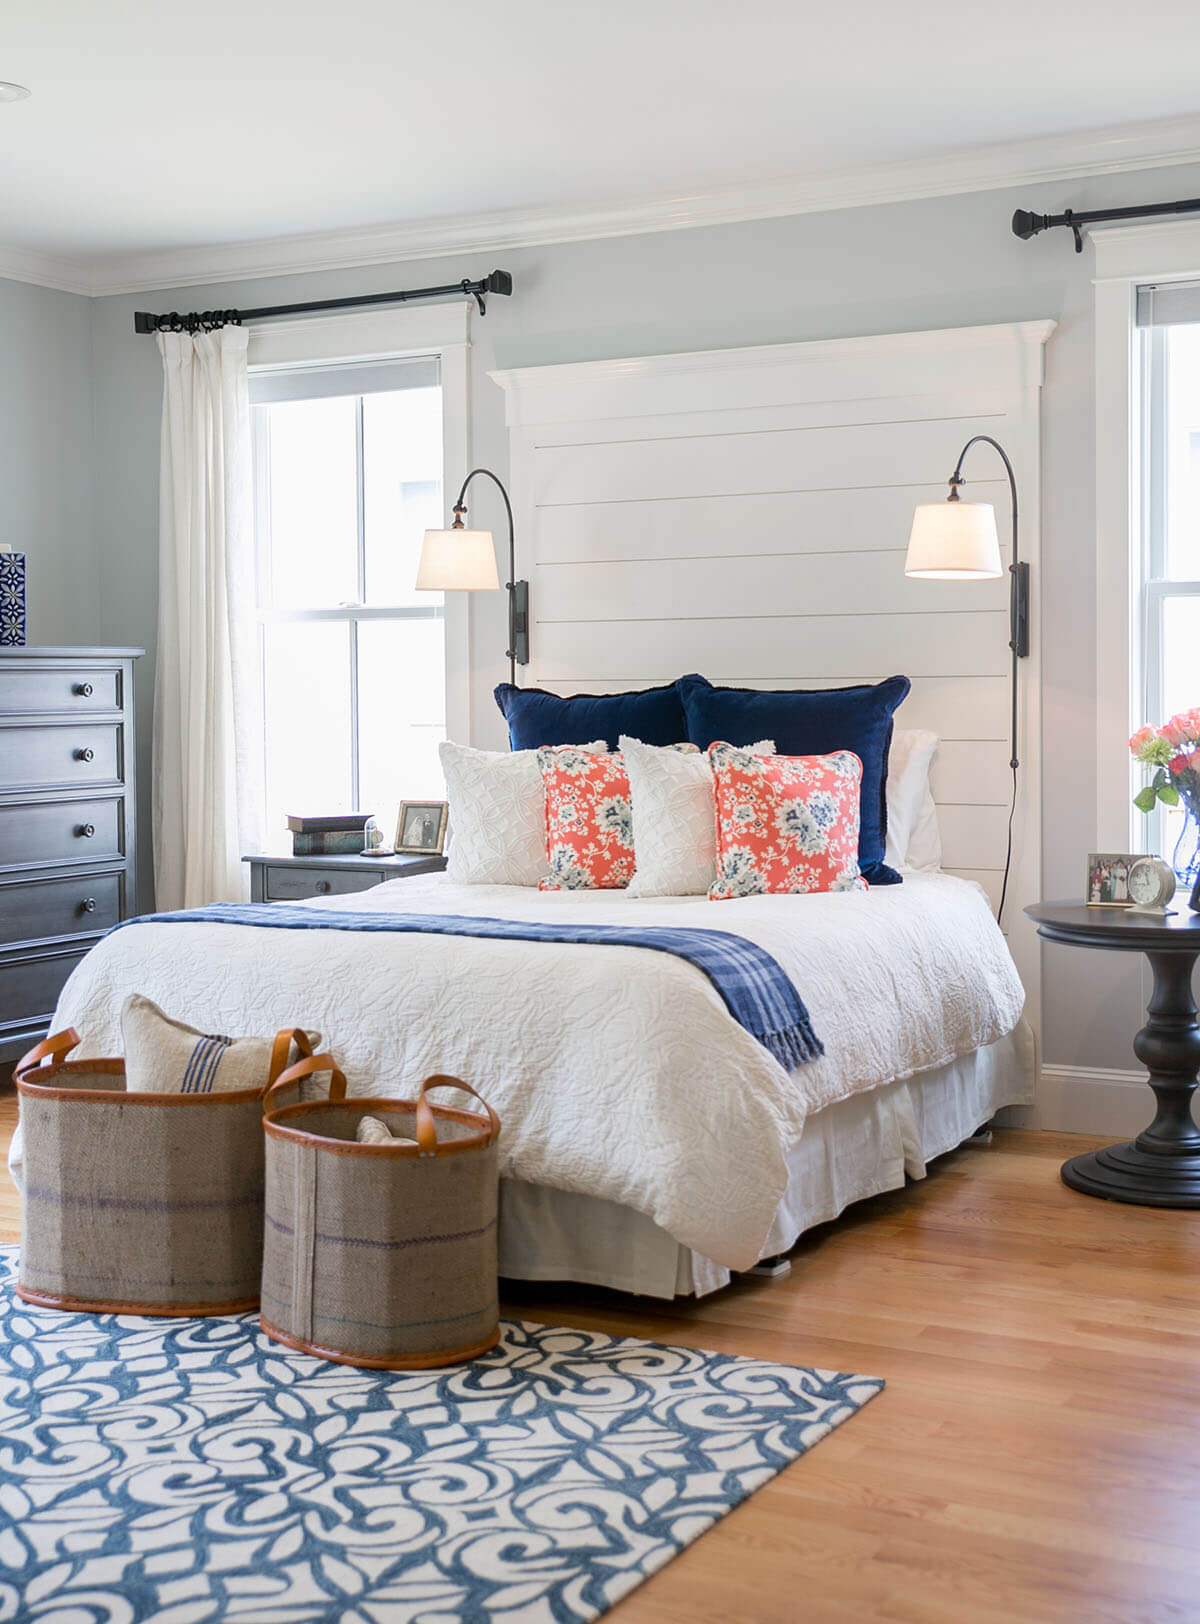 Attrayant 21. A Quaint Bedroom With Bright Accent Pillows